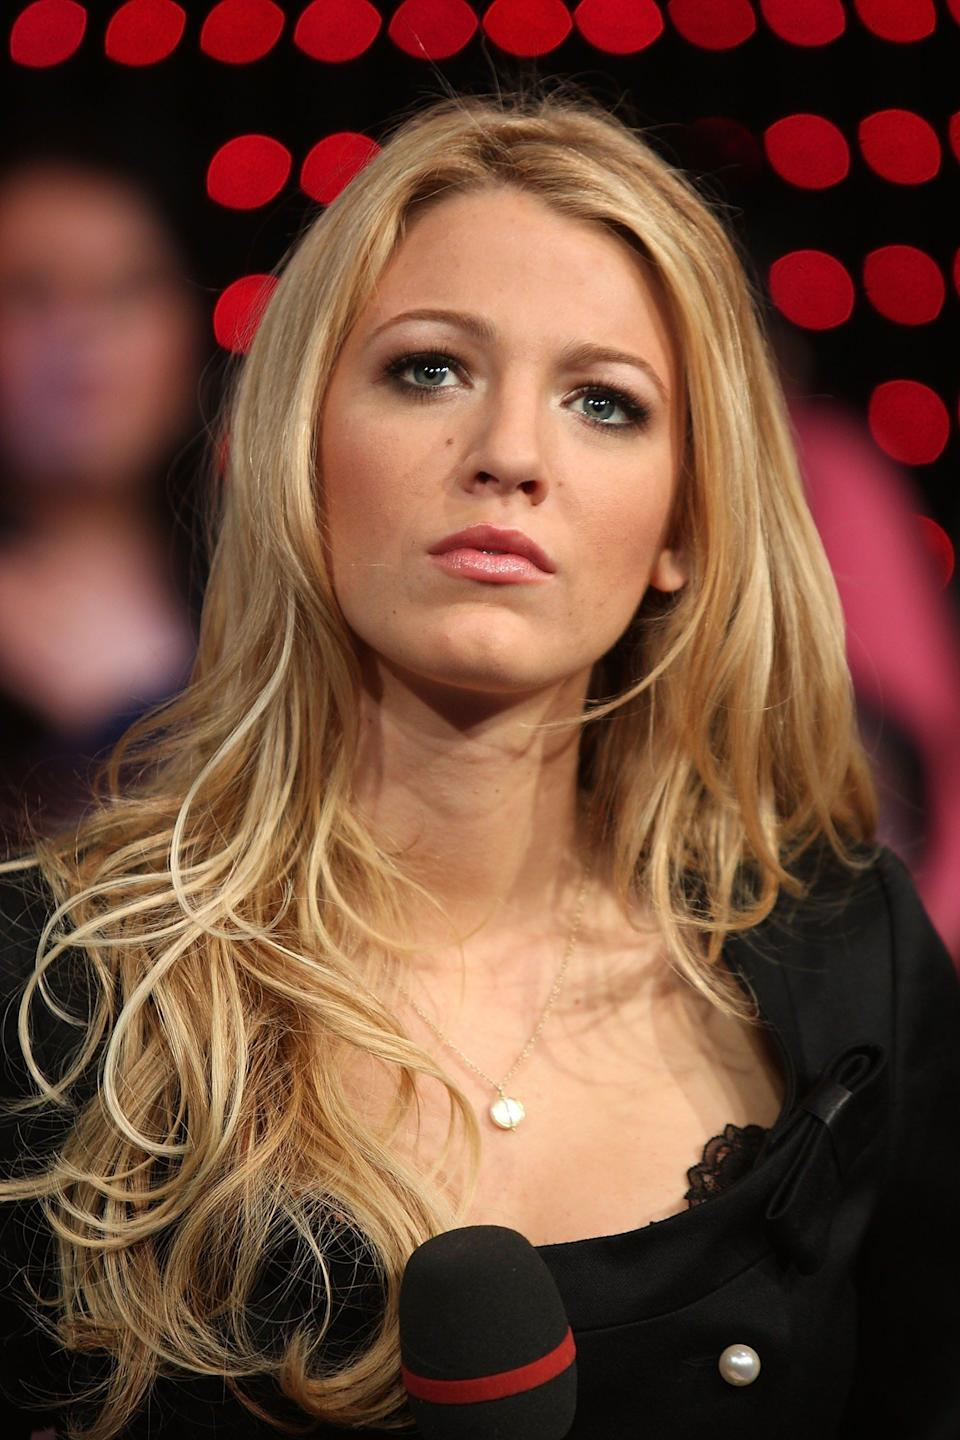 NEW YORK - OCTOBER 01:  (U.S. TABS OUT)  Actress Blake Lively appears onstage during MTV's Total Request Live at the MTV Times Square Studios on October 1, 2007 in New York City.  (Photo by Scott Gries/Getty Images)